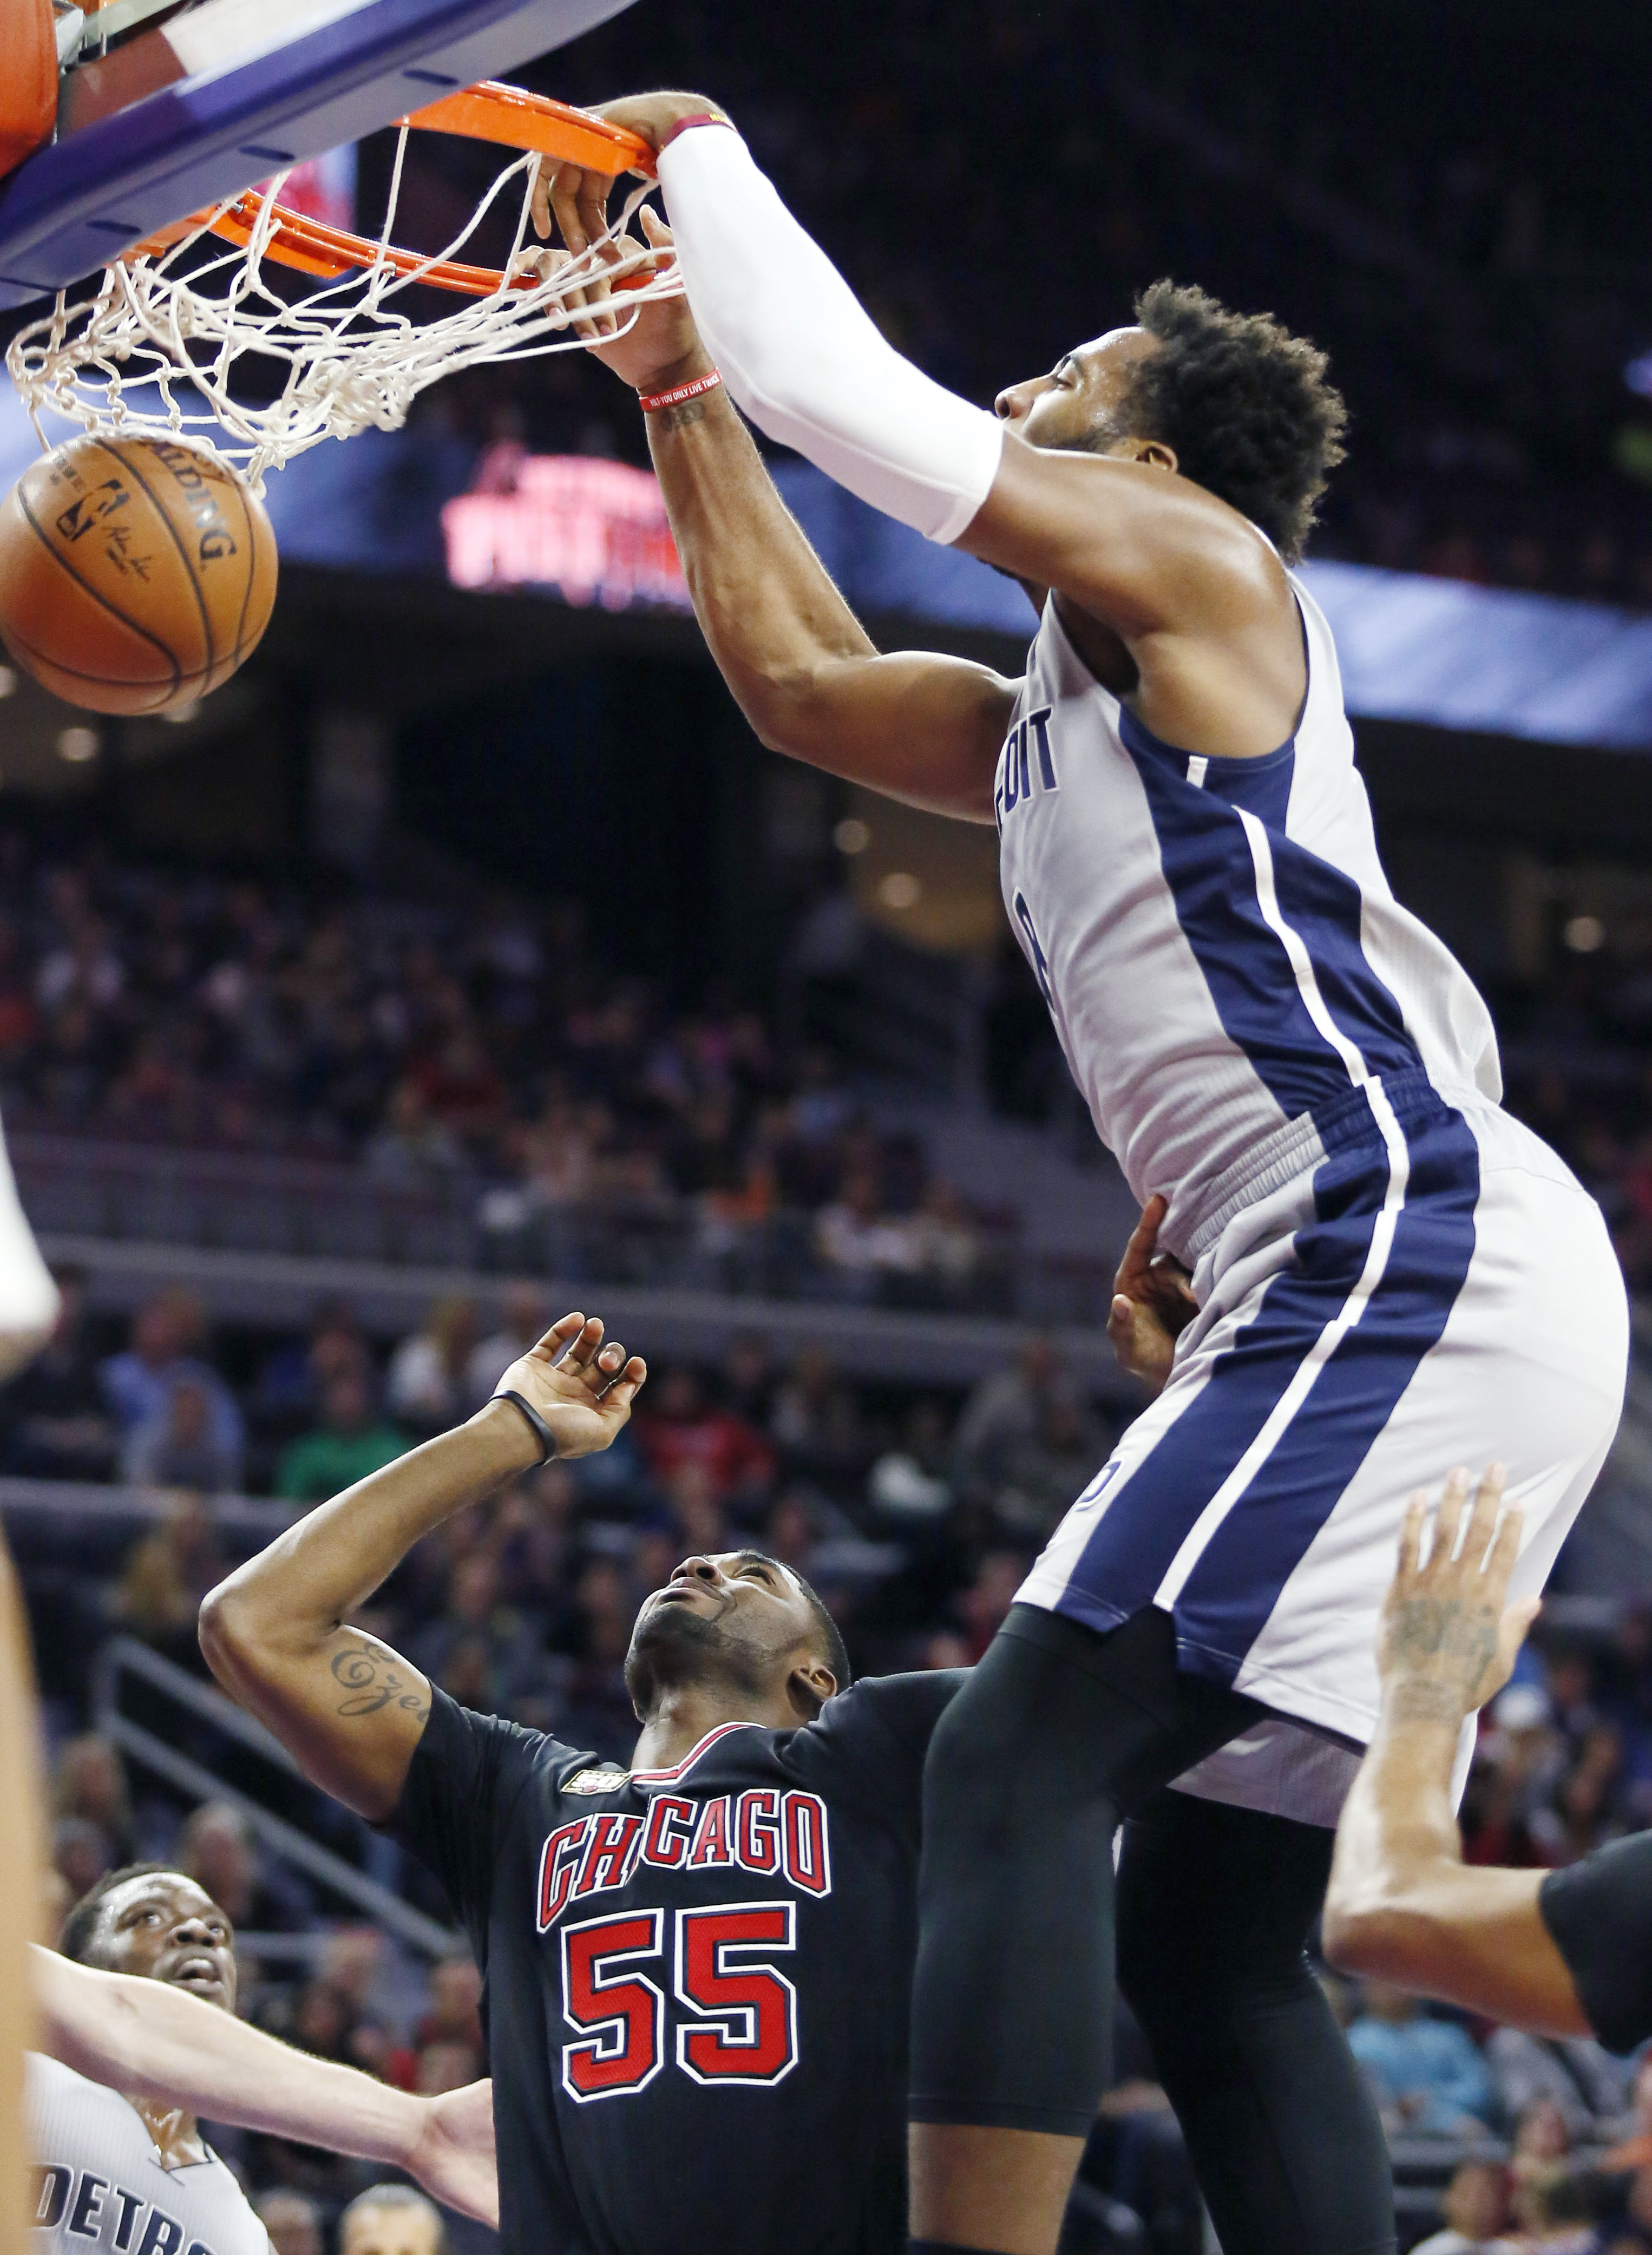 Detroit Pistons' Andre Drummond dunks over Chicago Bulls' E'Twaun Moore (55) during the first half of an NBA basketball game Friday, Oct. 30, 2015, in Auburn Hills, Mich. (AP Photo/Duane Burleson)